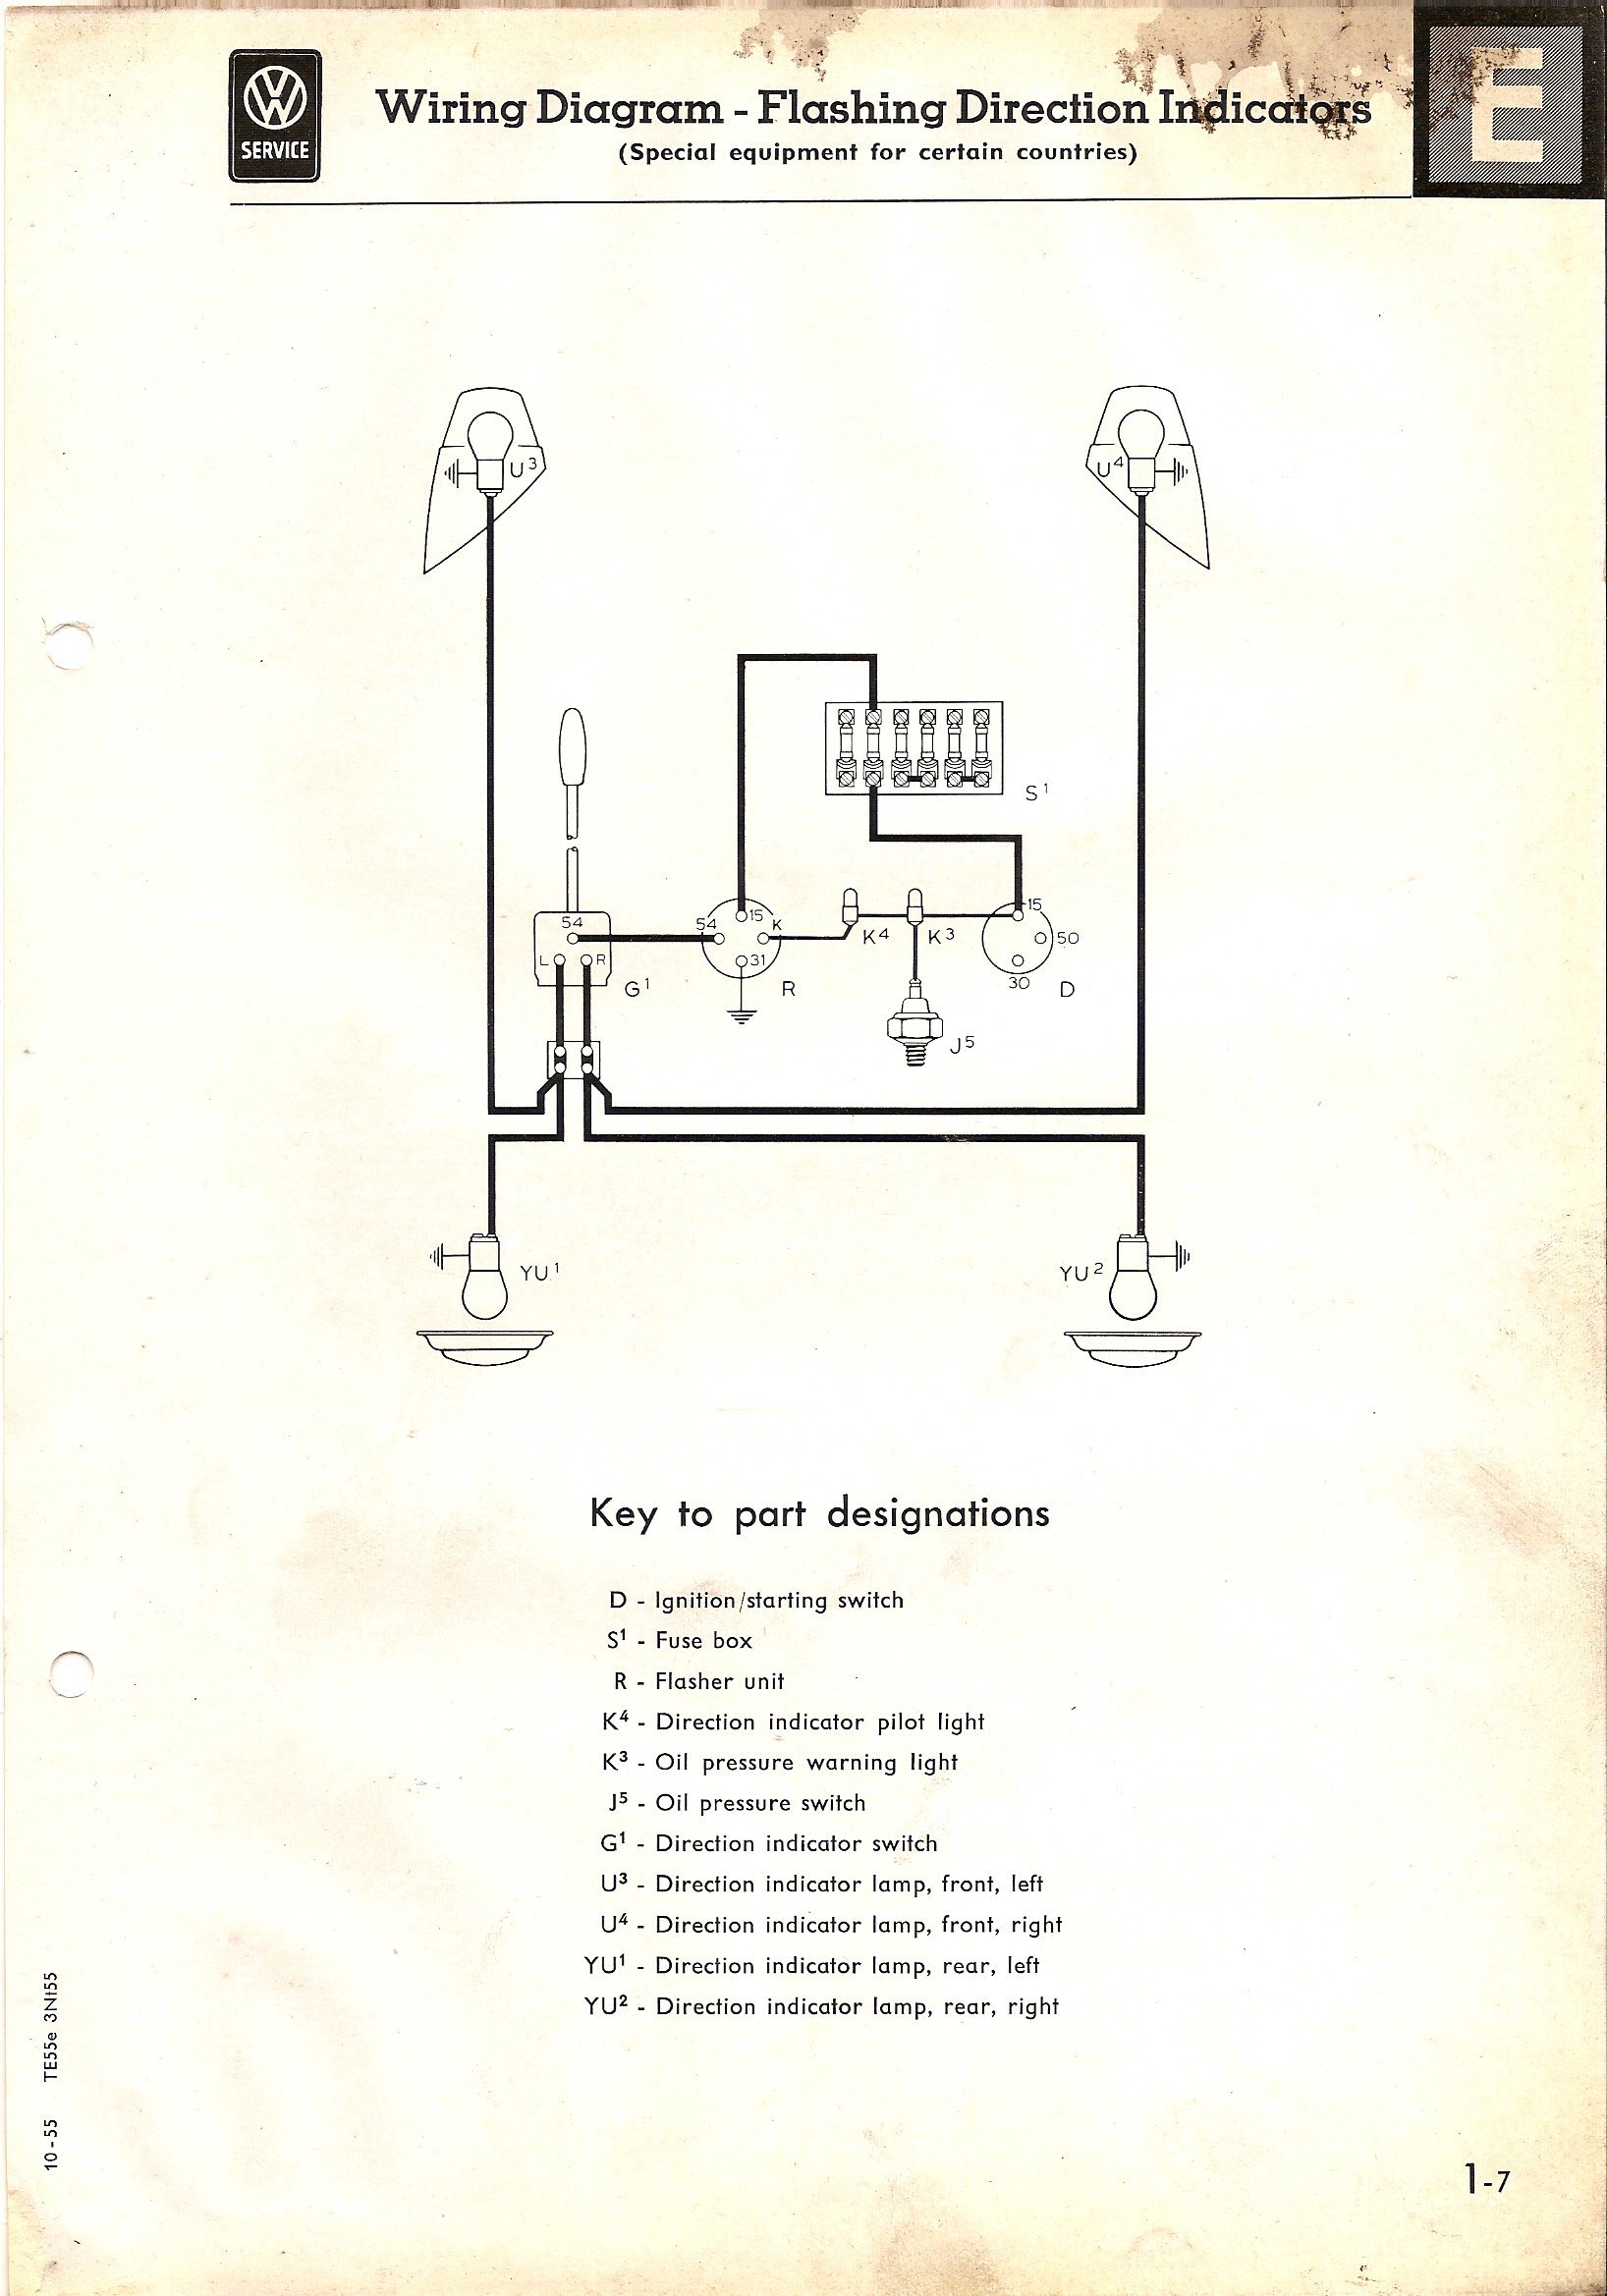 Type 2 Wiring Diagrams Universal Vehicle Diagram